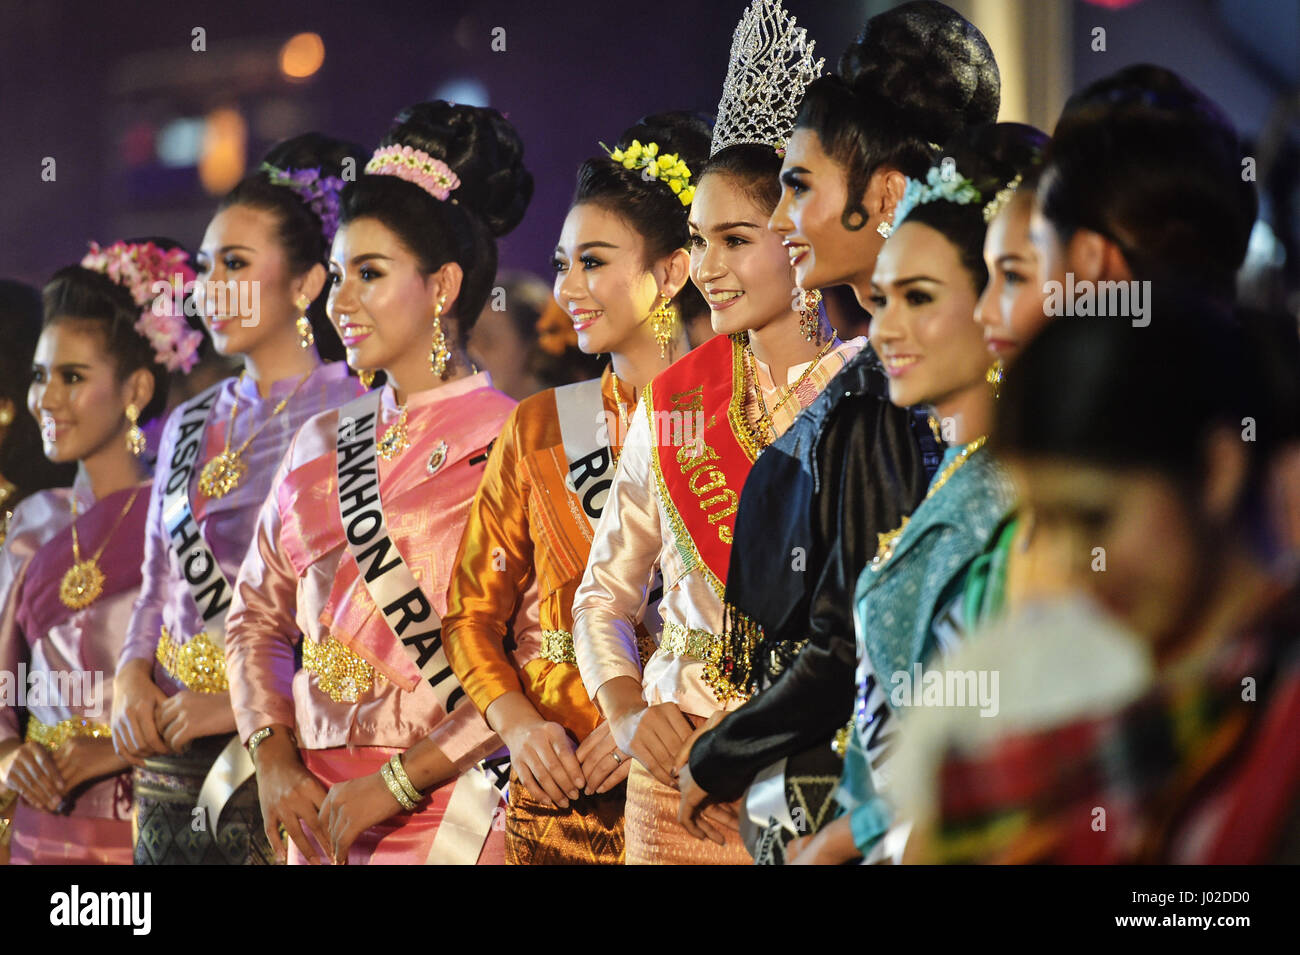 Bangkok, Thailand. 8th Apr, 2017. 'Misses Songkran' from various Thai provinces attend the Amazing Songkran - Stock Image